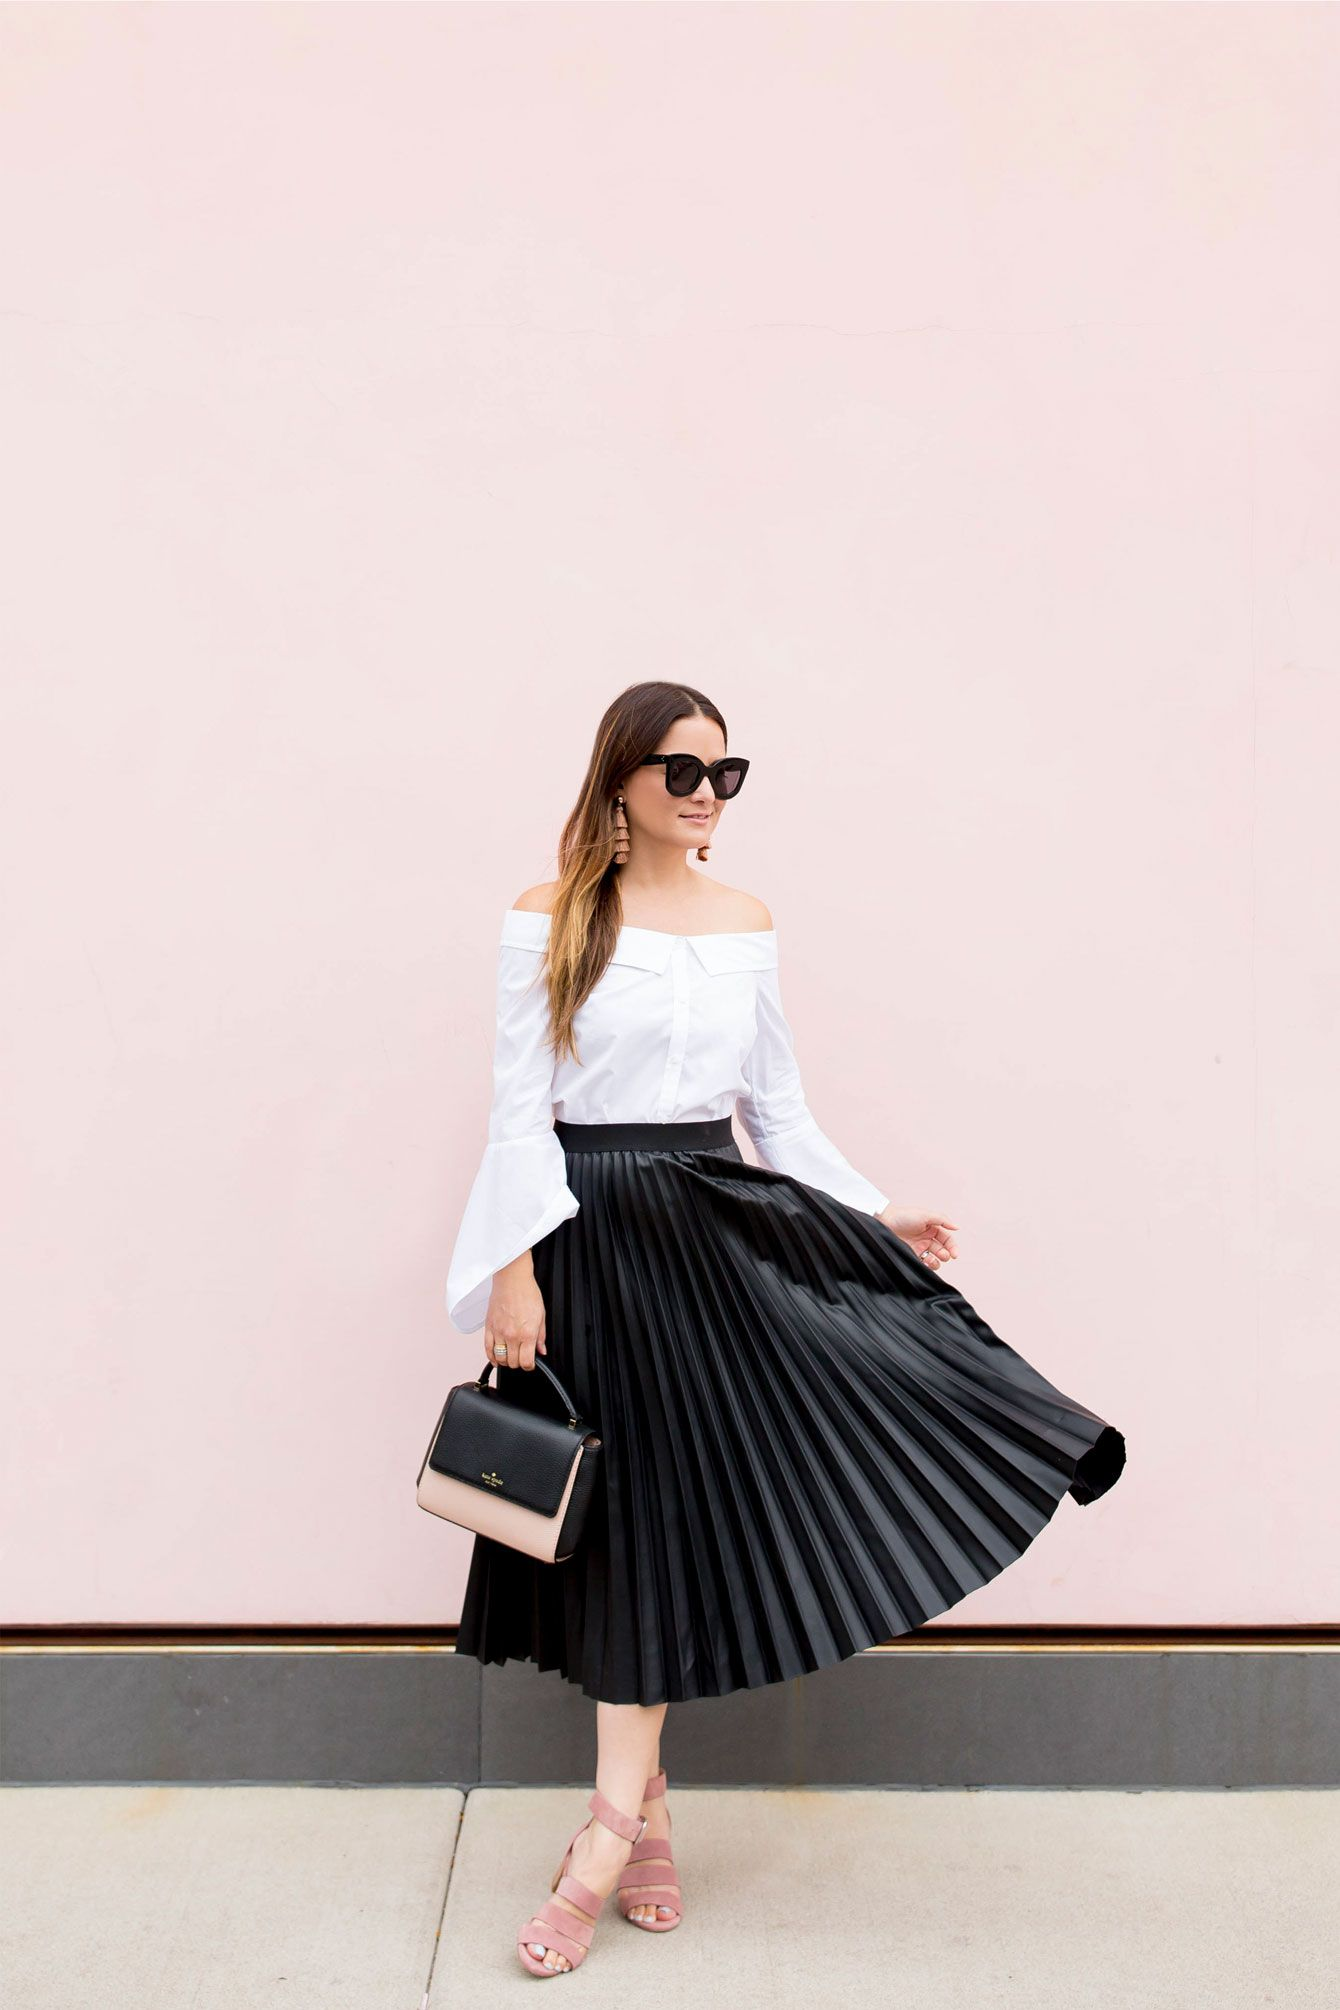 0f21a3703 Black Faux Leather Pleated Skirt at a Chicago Pink Wall | Stylist's ...